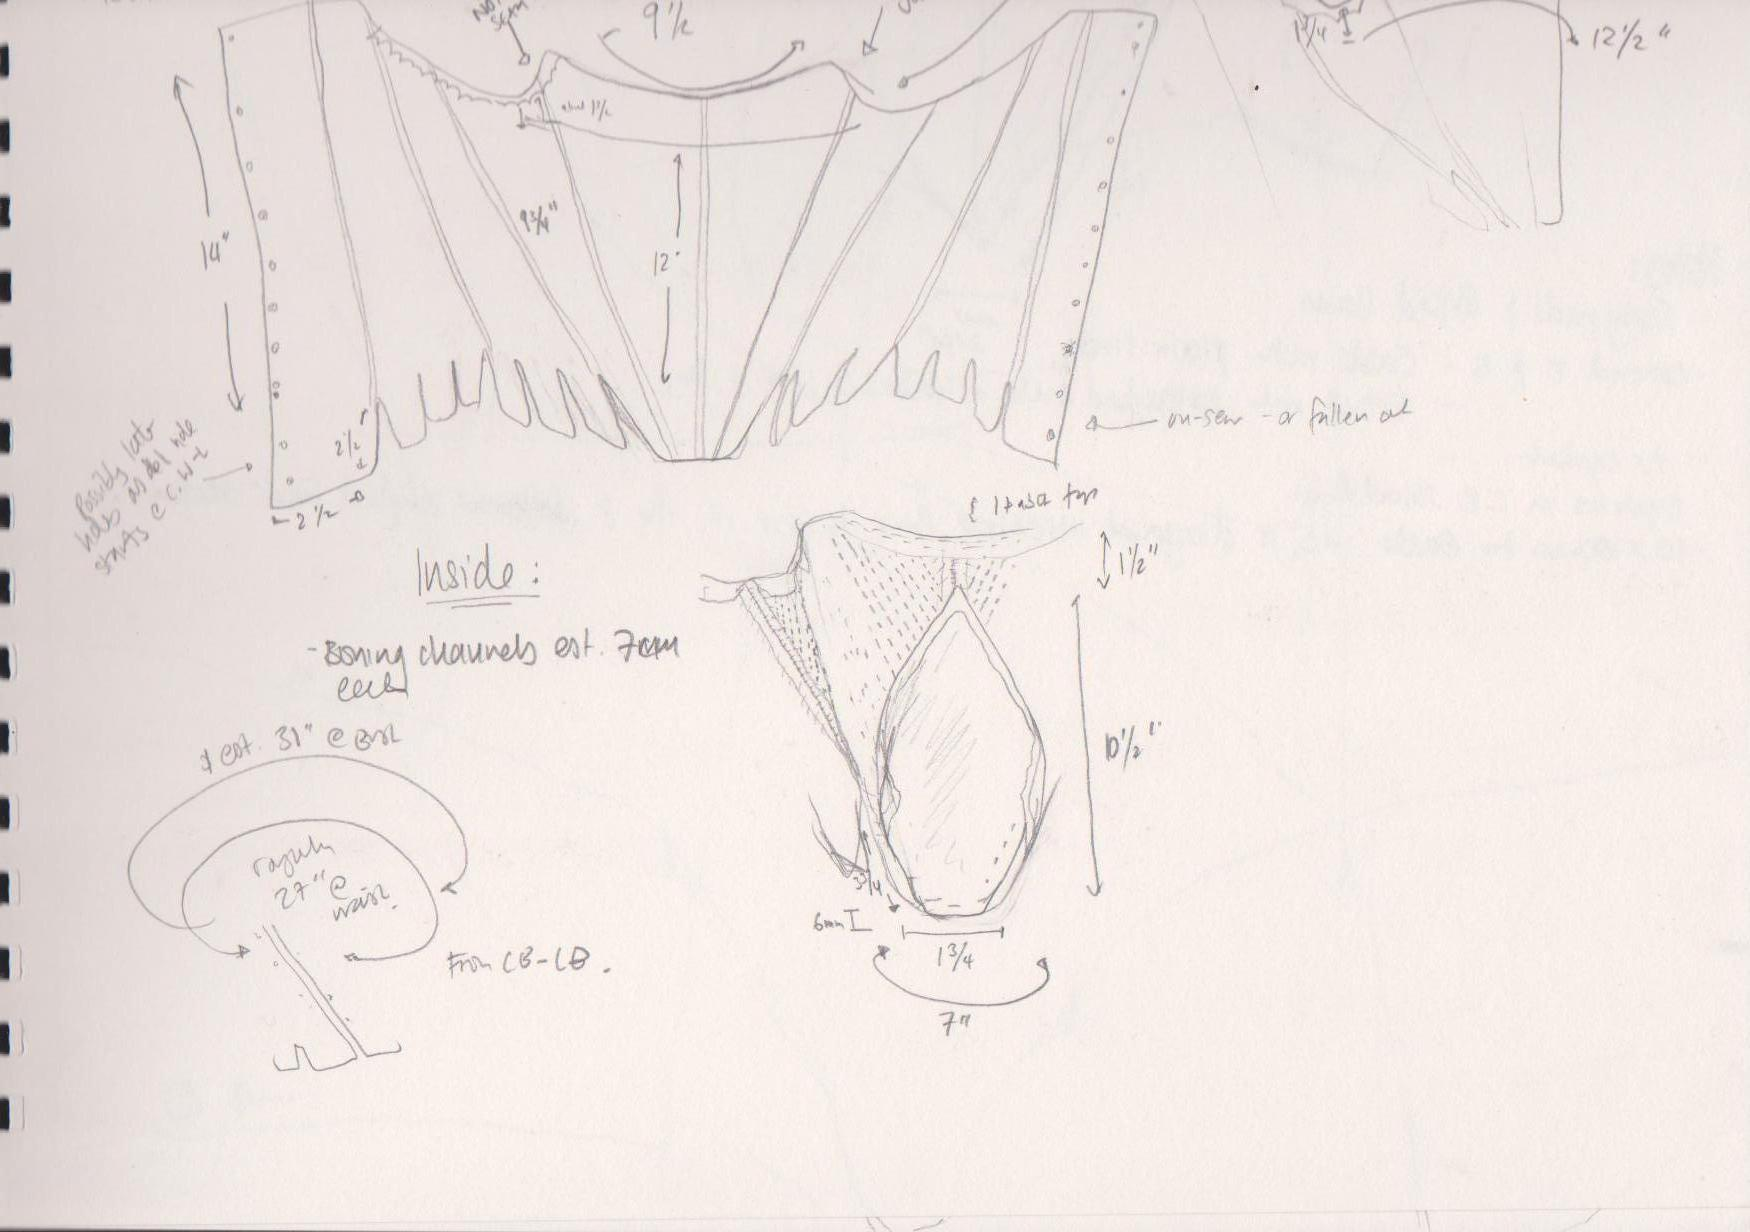 Notes from the museums sketches and drawings of costumes in the NT collections, 18th c corsets and stays research, replica stays and corsetry from the georgian period, handBound costume research into Stays, museum replicas 1700s, 18th c. underwear, historical costumes made to be based on museum items and replicas, theatre and film costumiers, made to measure historical costumes for theatre and re-enactment, bespoke 18thc garments, custom made historical costumes